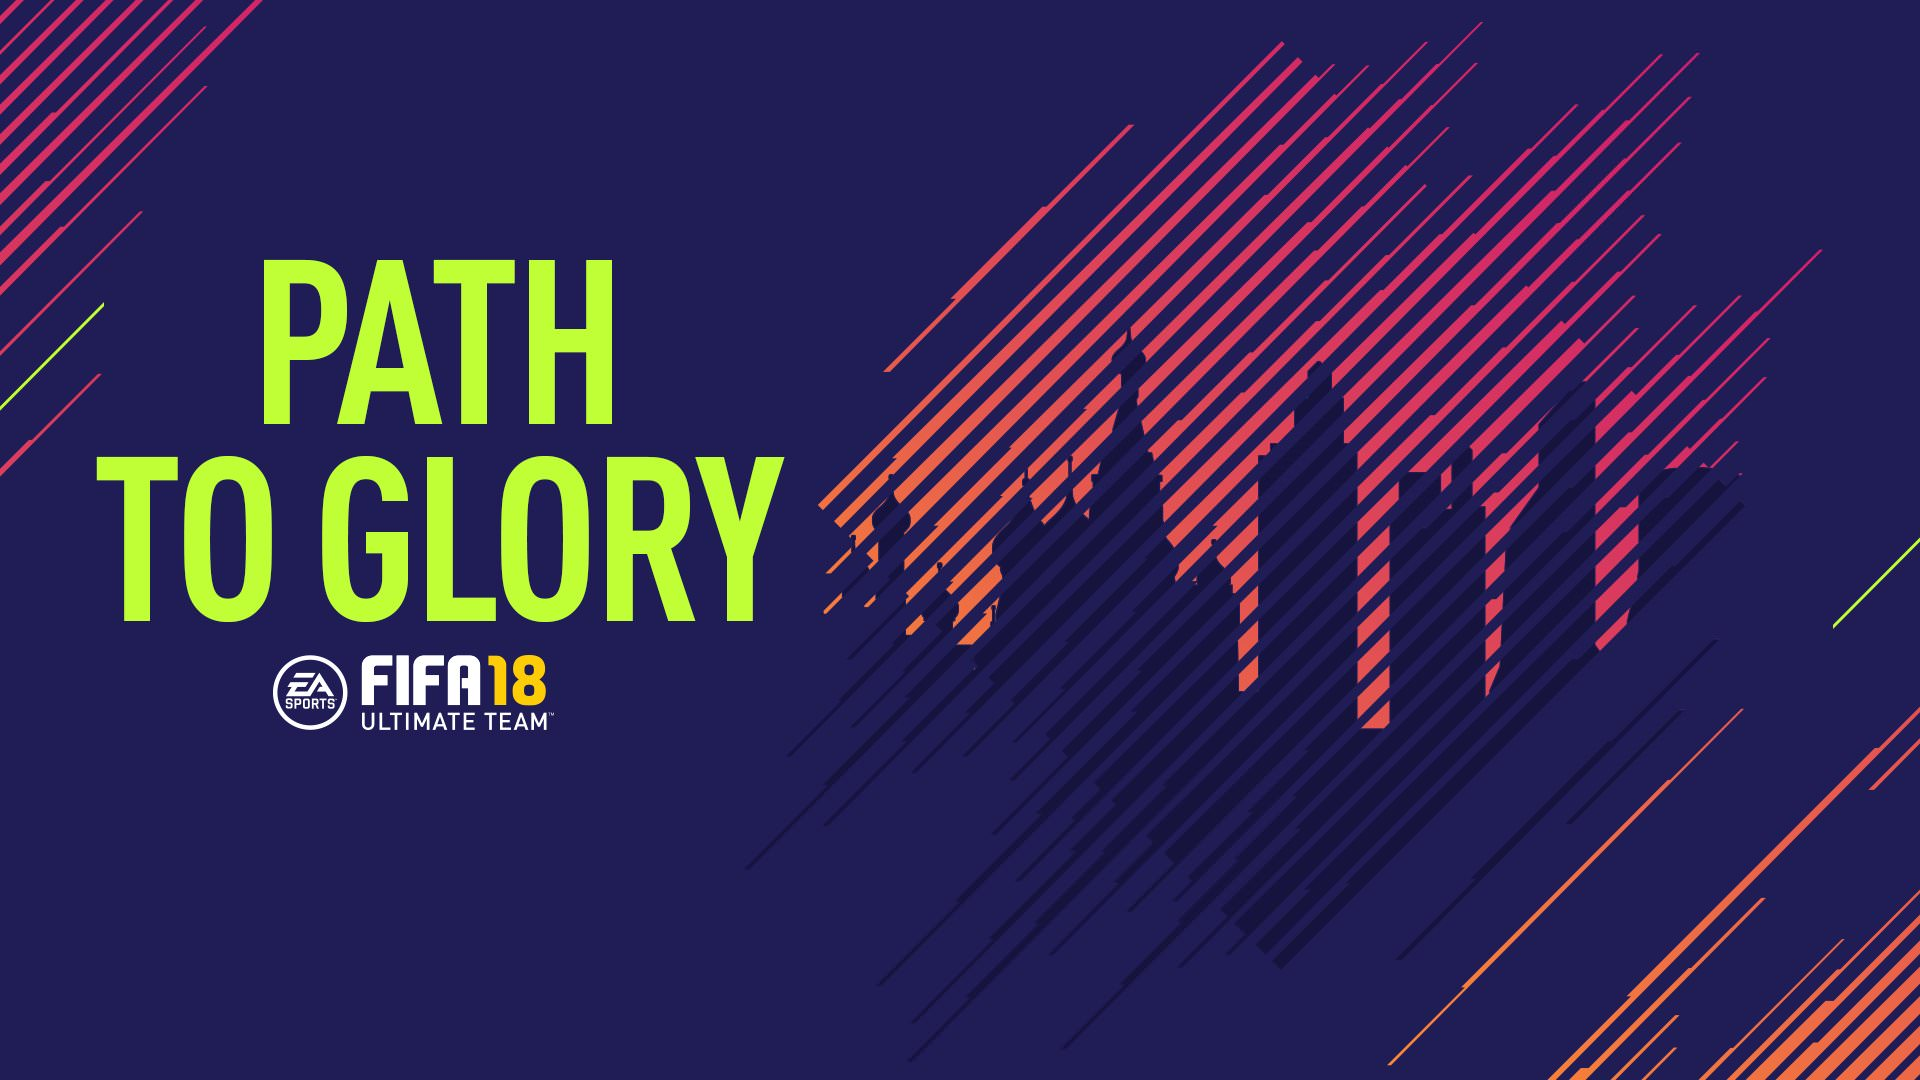 Design Squad Website >> FIFA 18 Path to Glory – FIFPlay